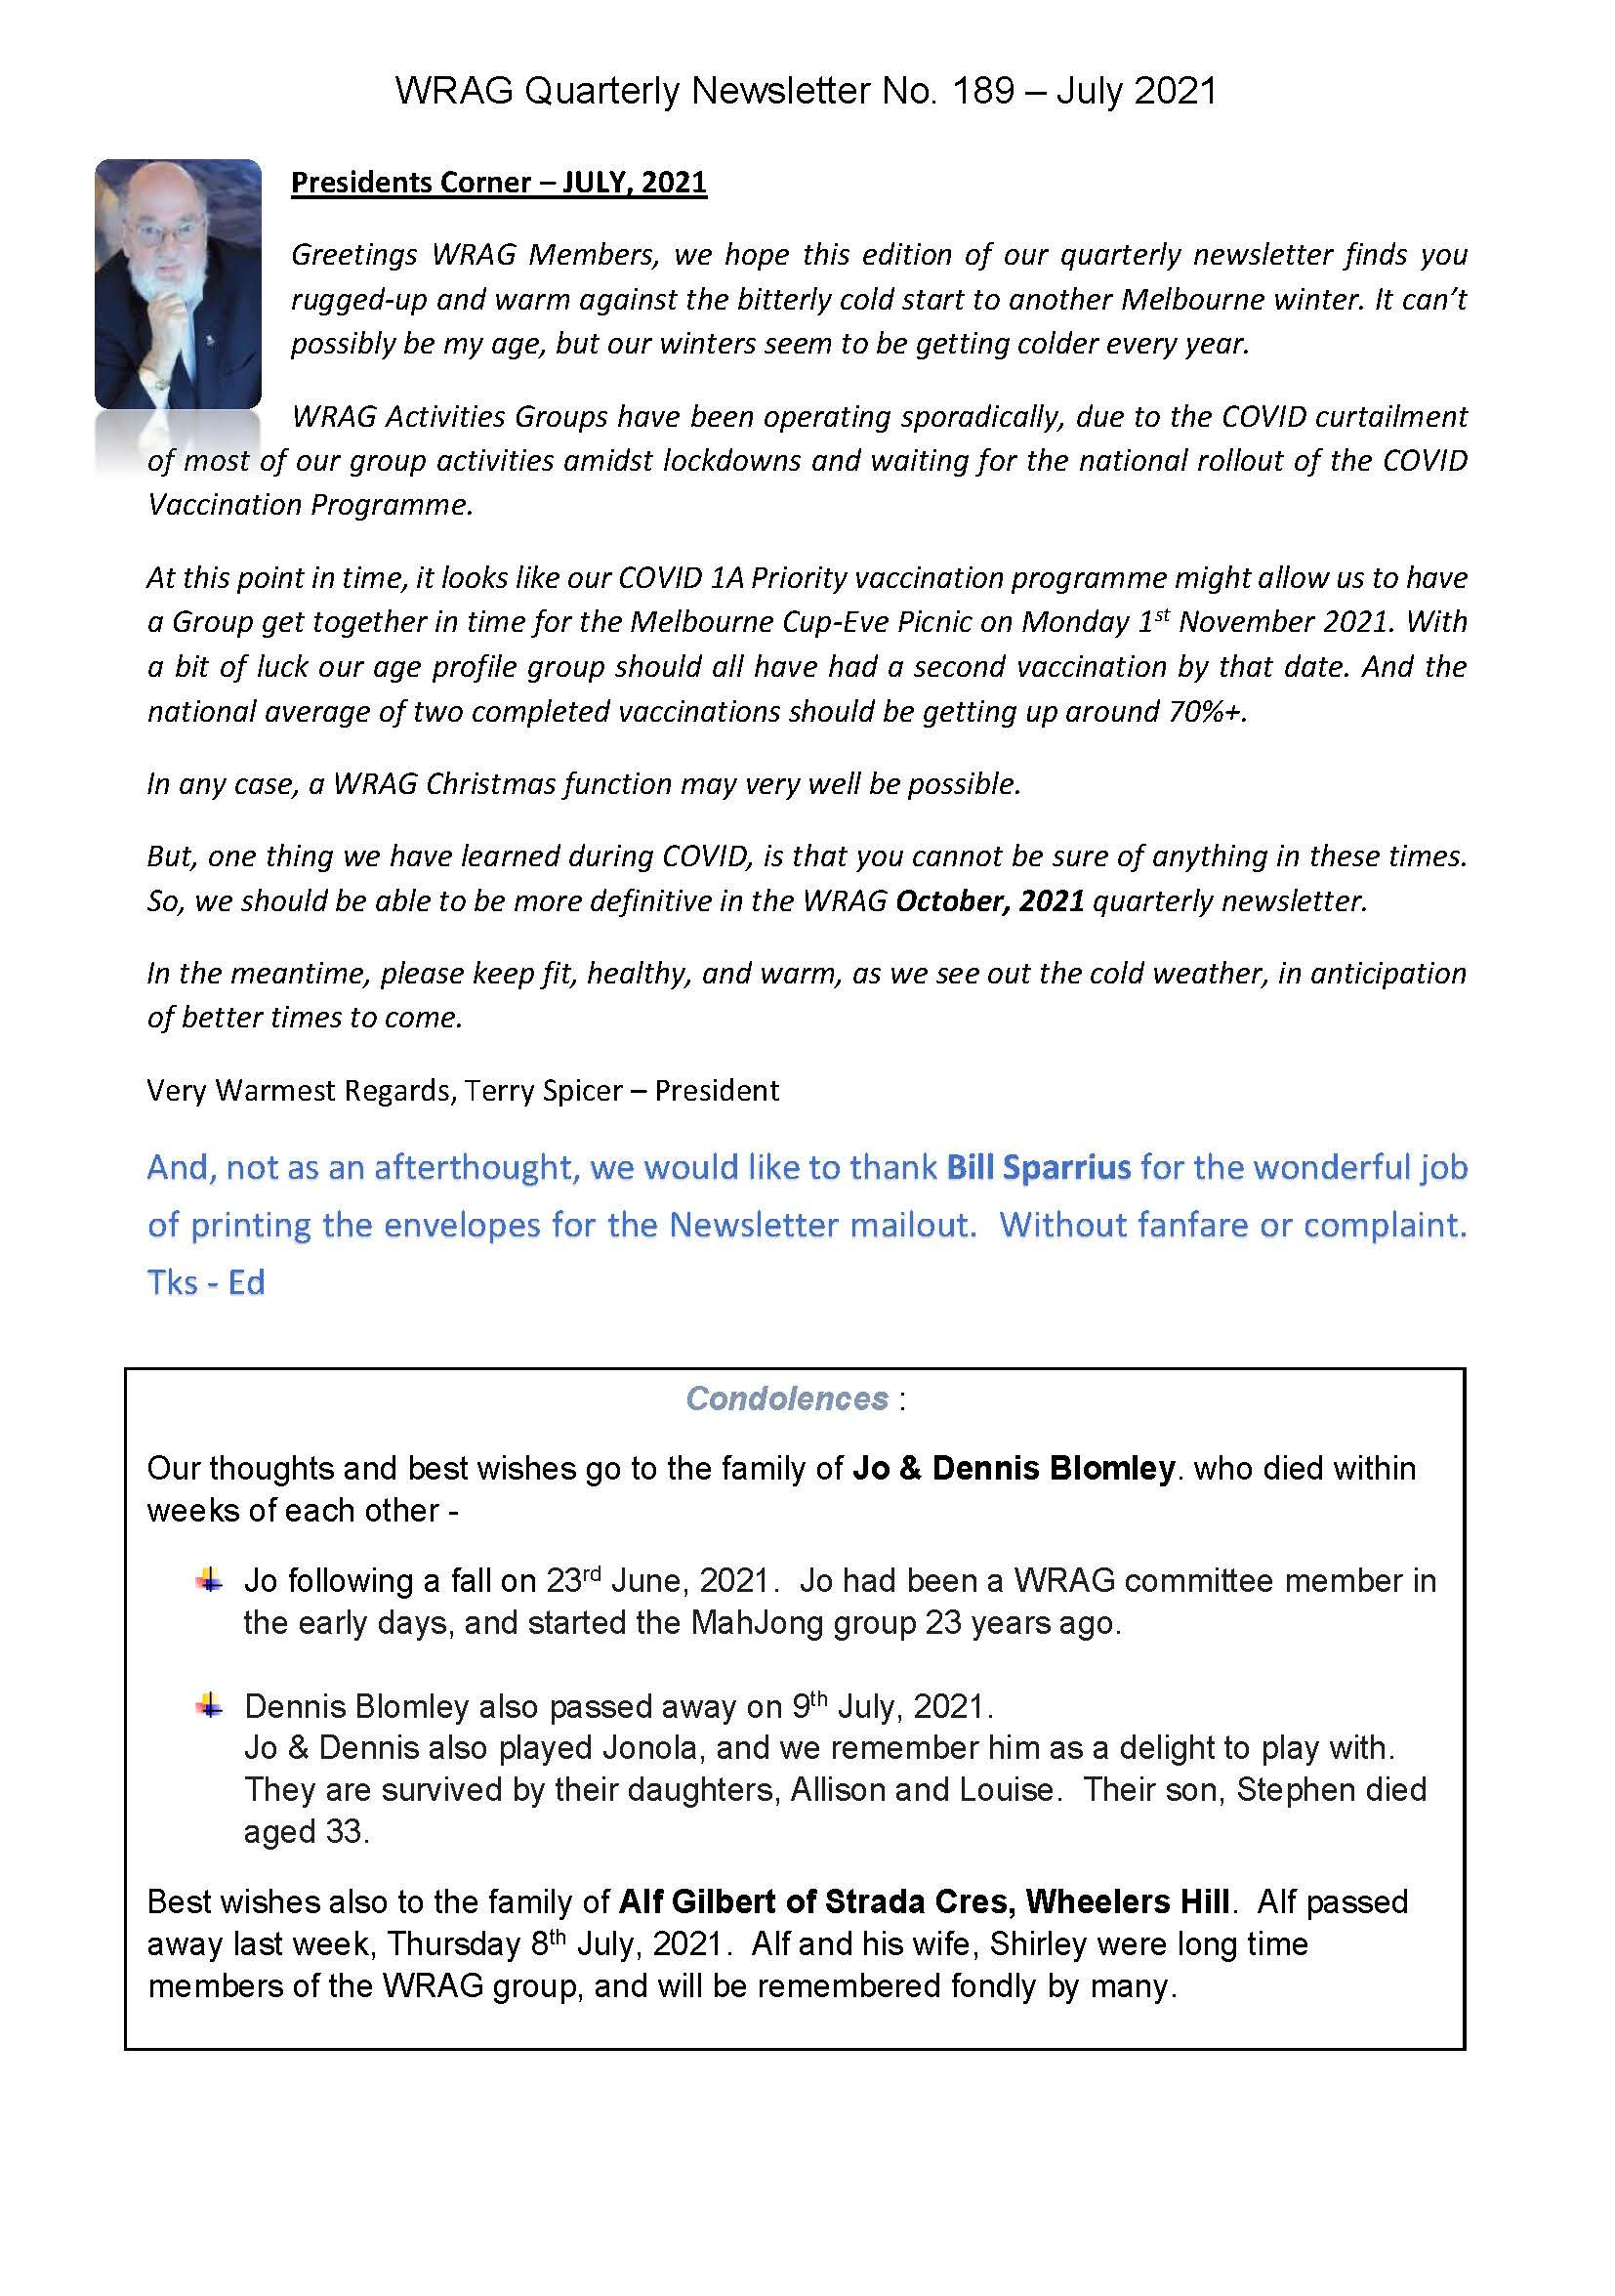 WRAG Newsletter No. 189 July 2021_Page_1